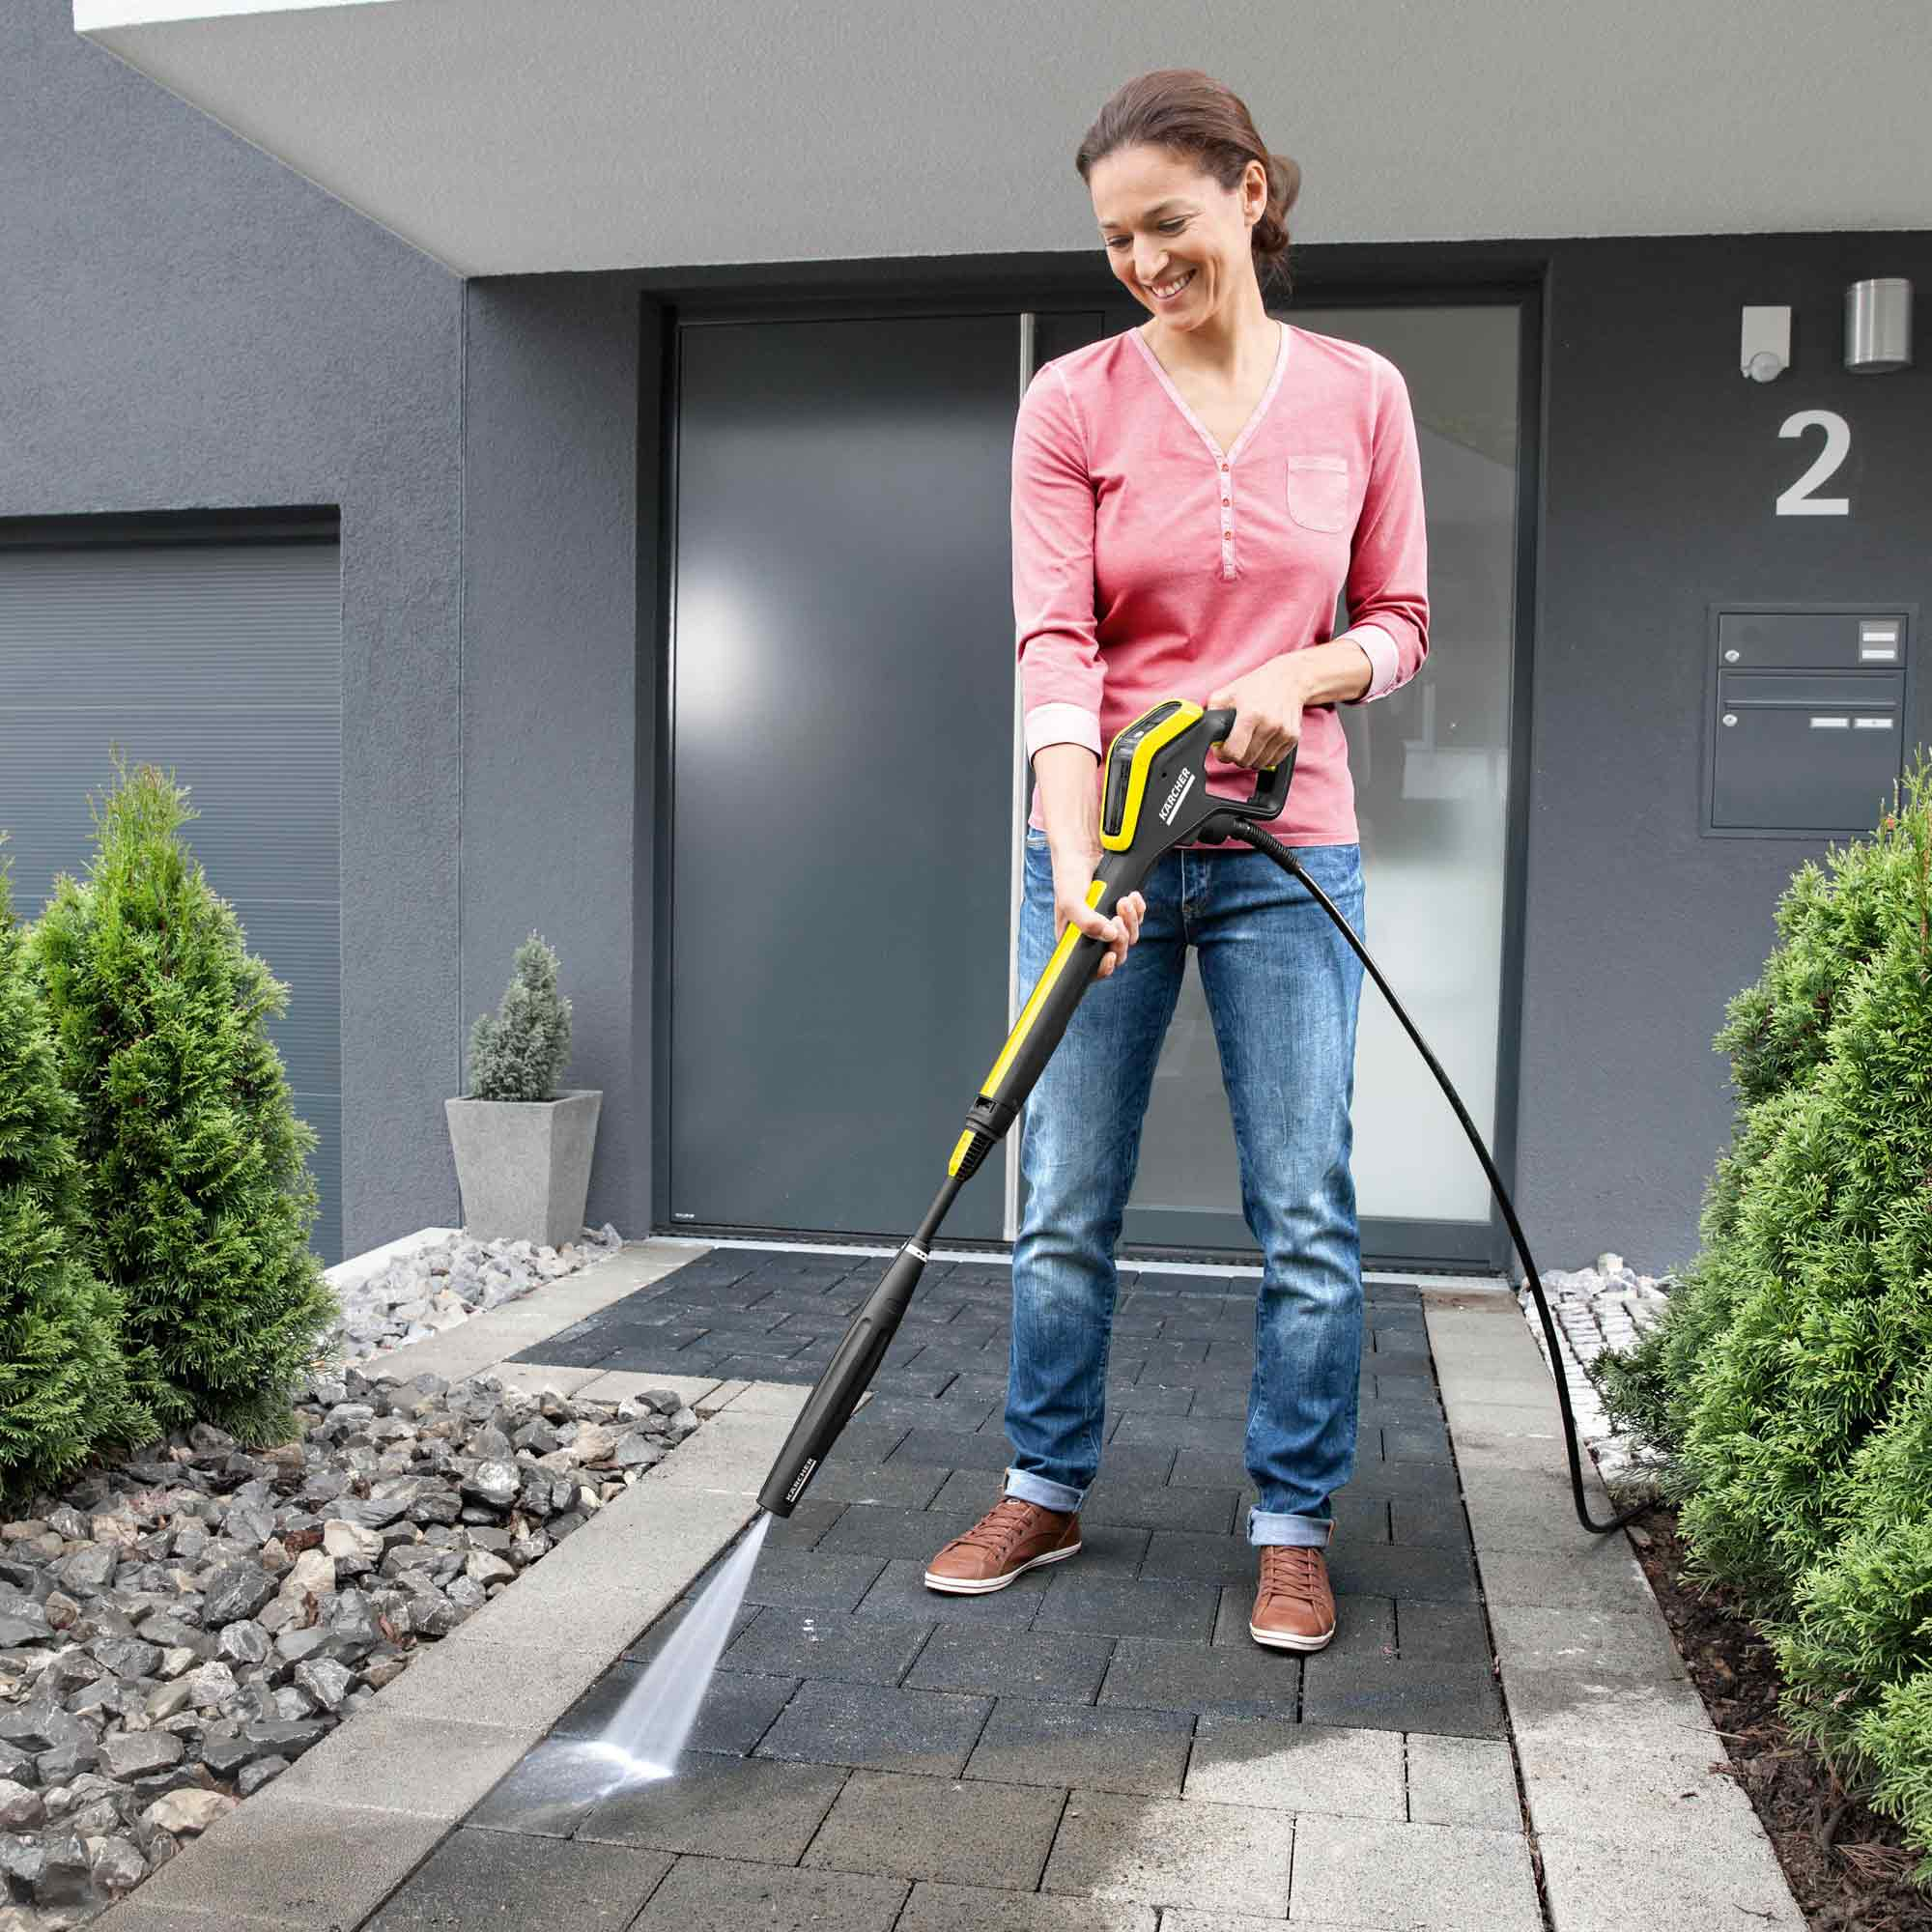 Karcher 13171360 Karcher K7 Premium Full Control Plus Home